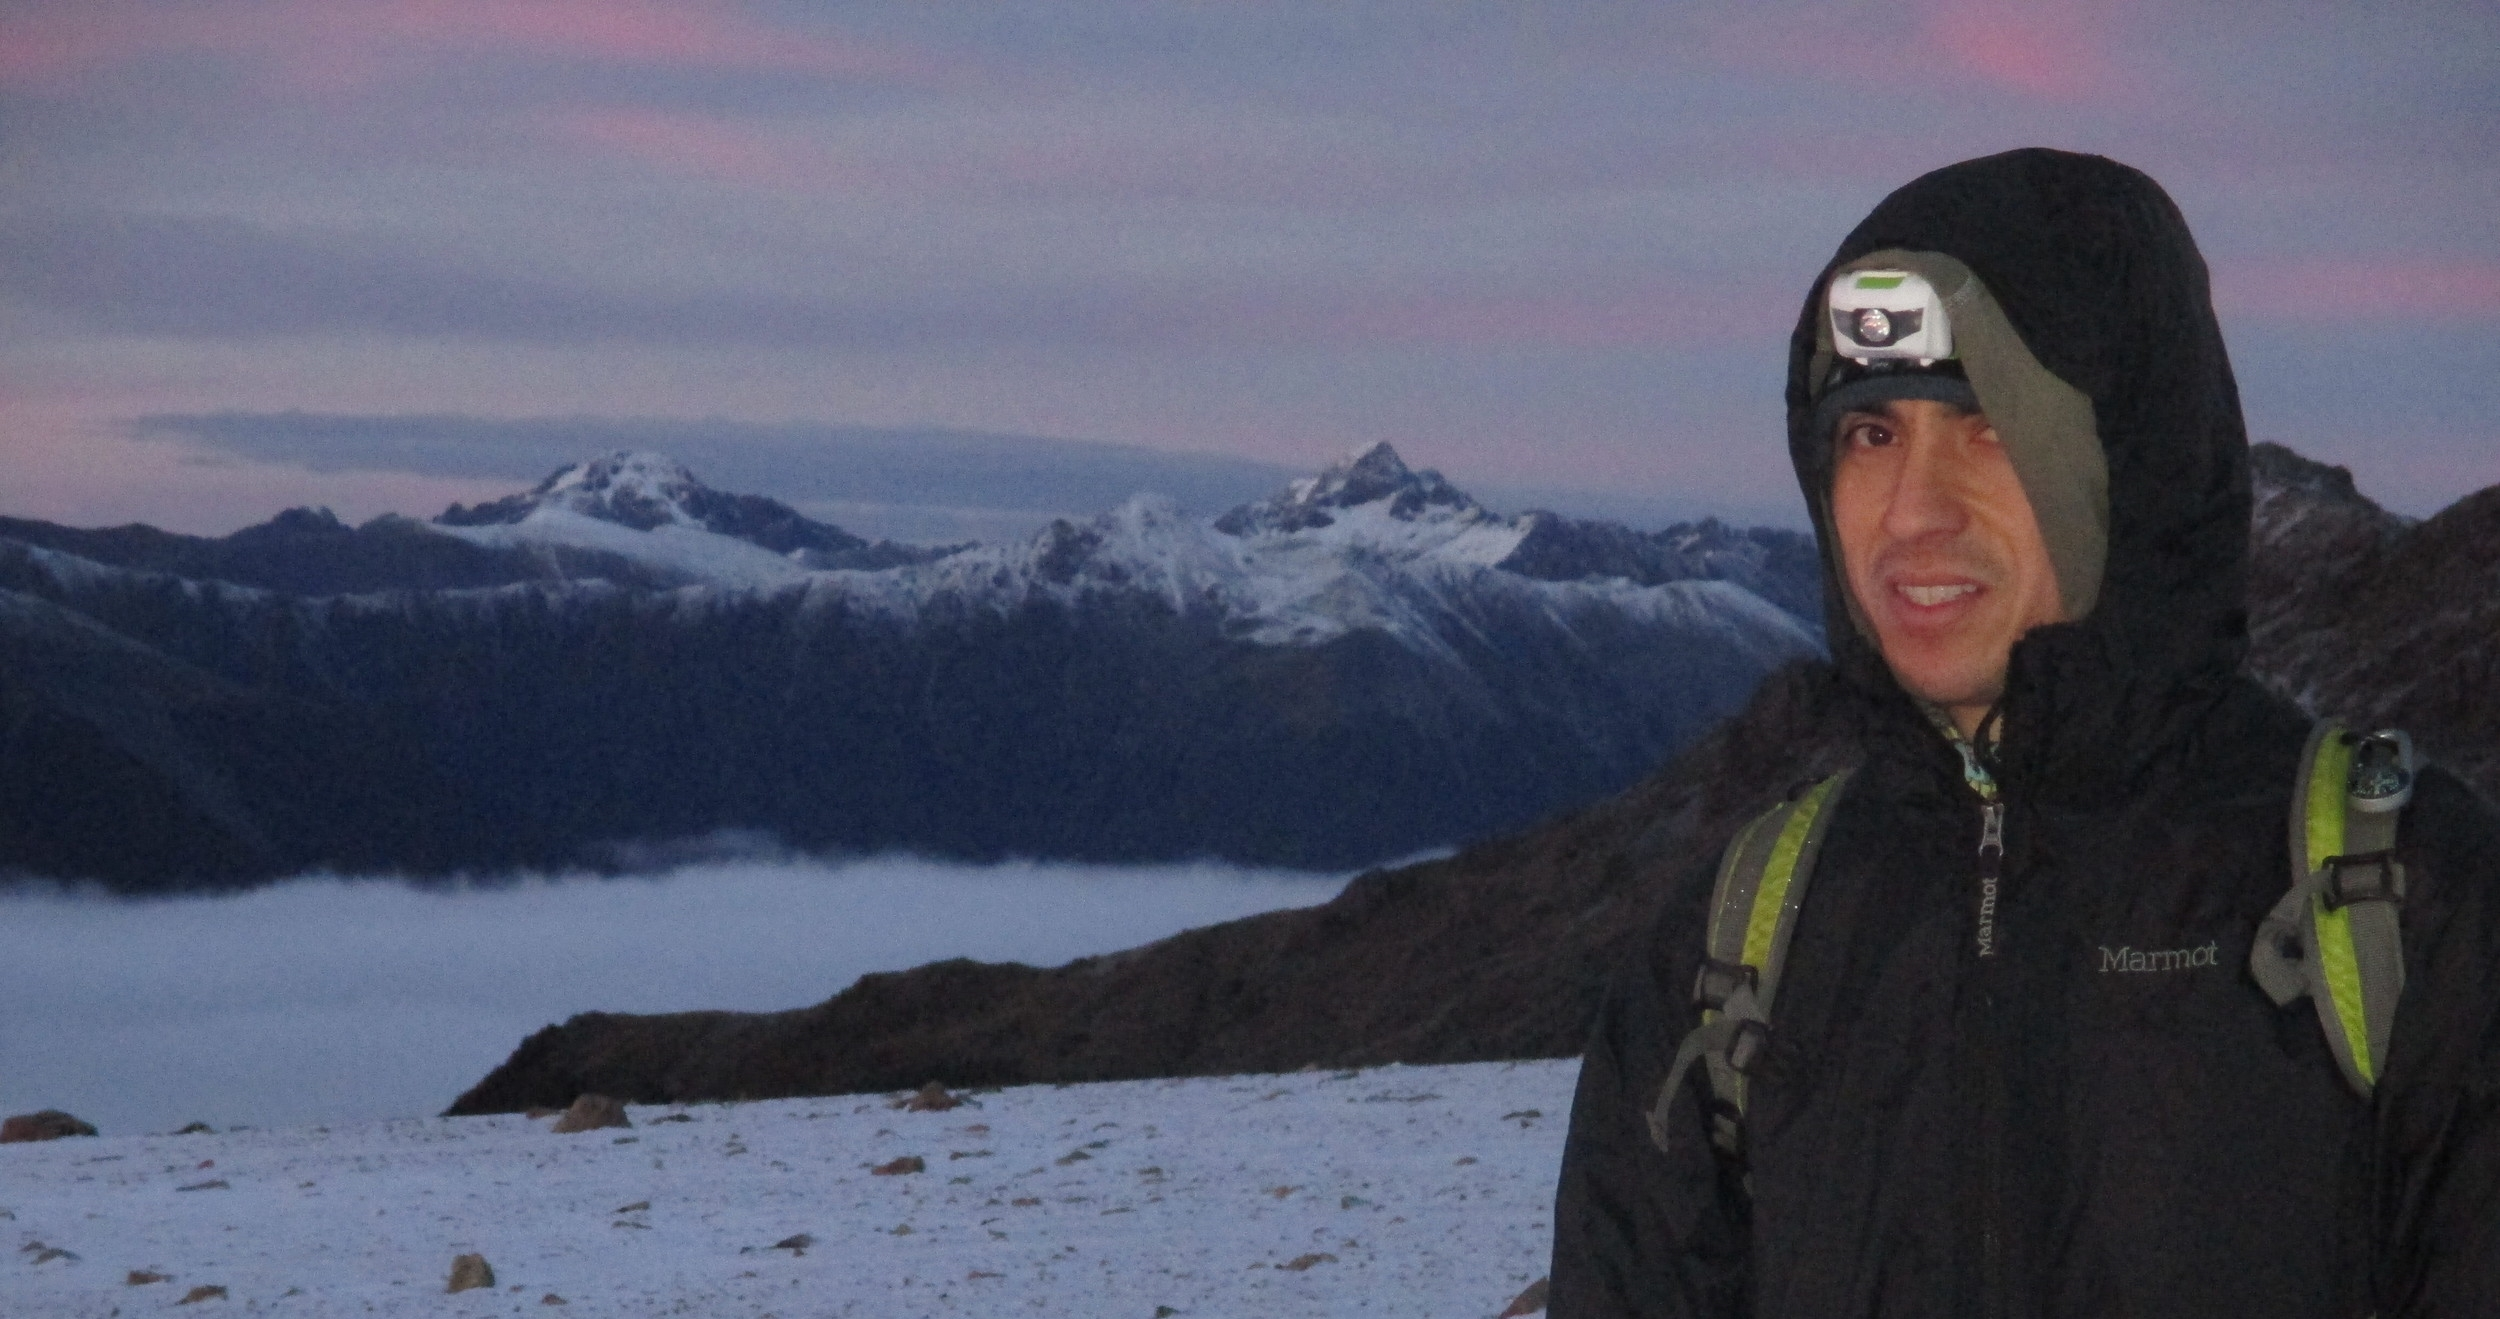 Dawn start for Sergio, Angelus ridge, Nelson Lakes July 2015, Mount Chittenden and point 2142 are in the distance